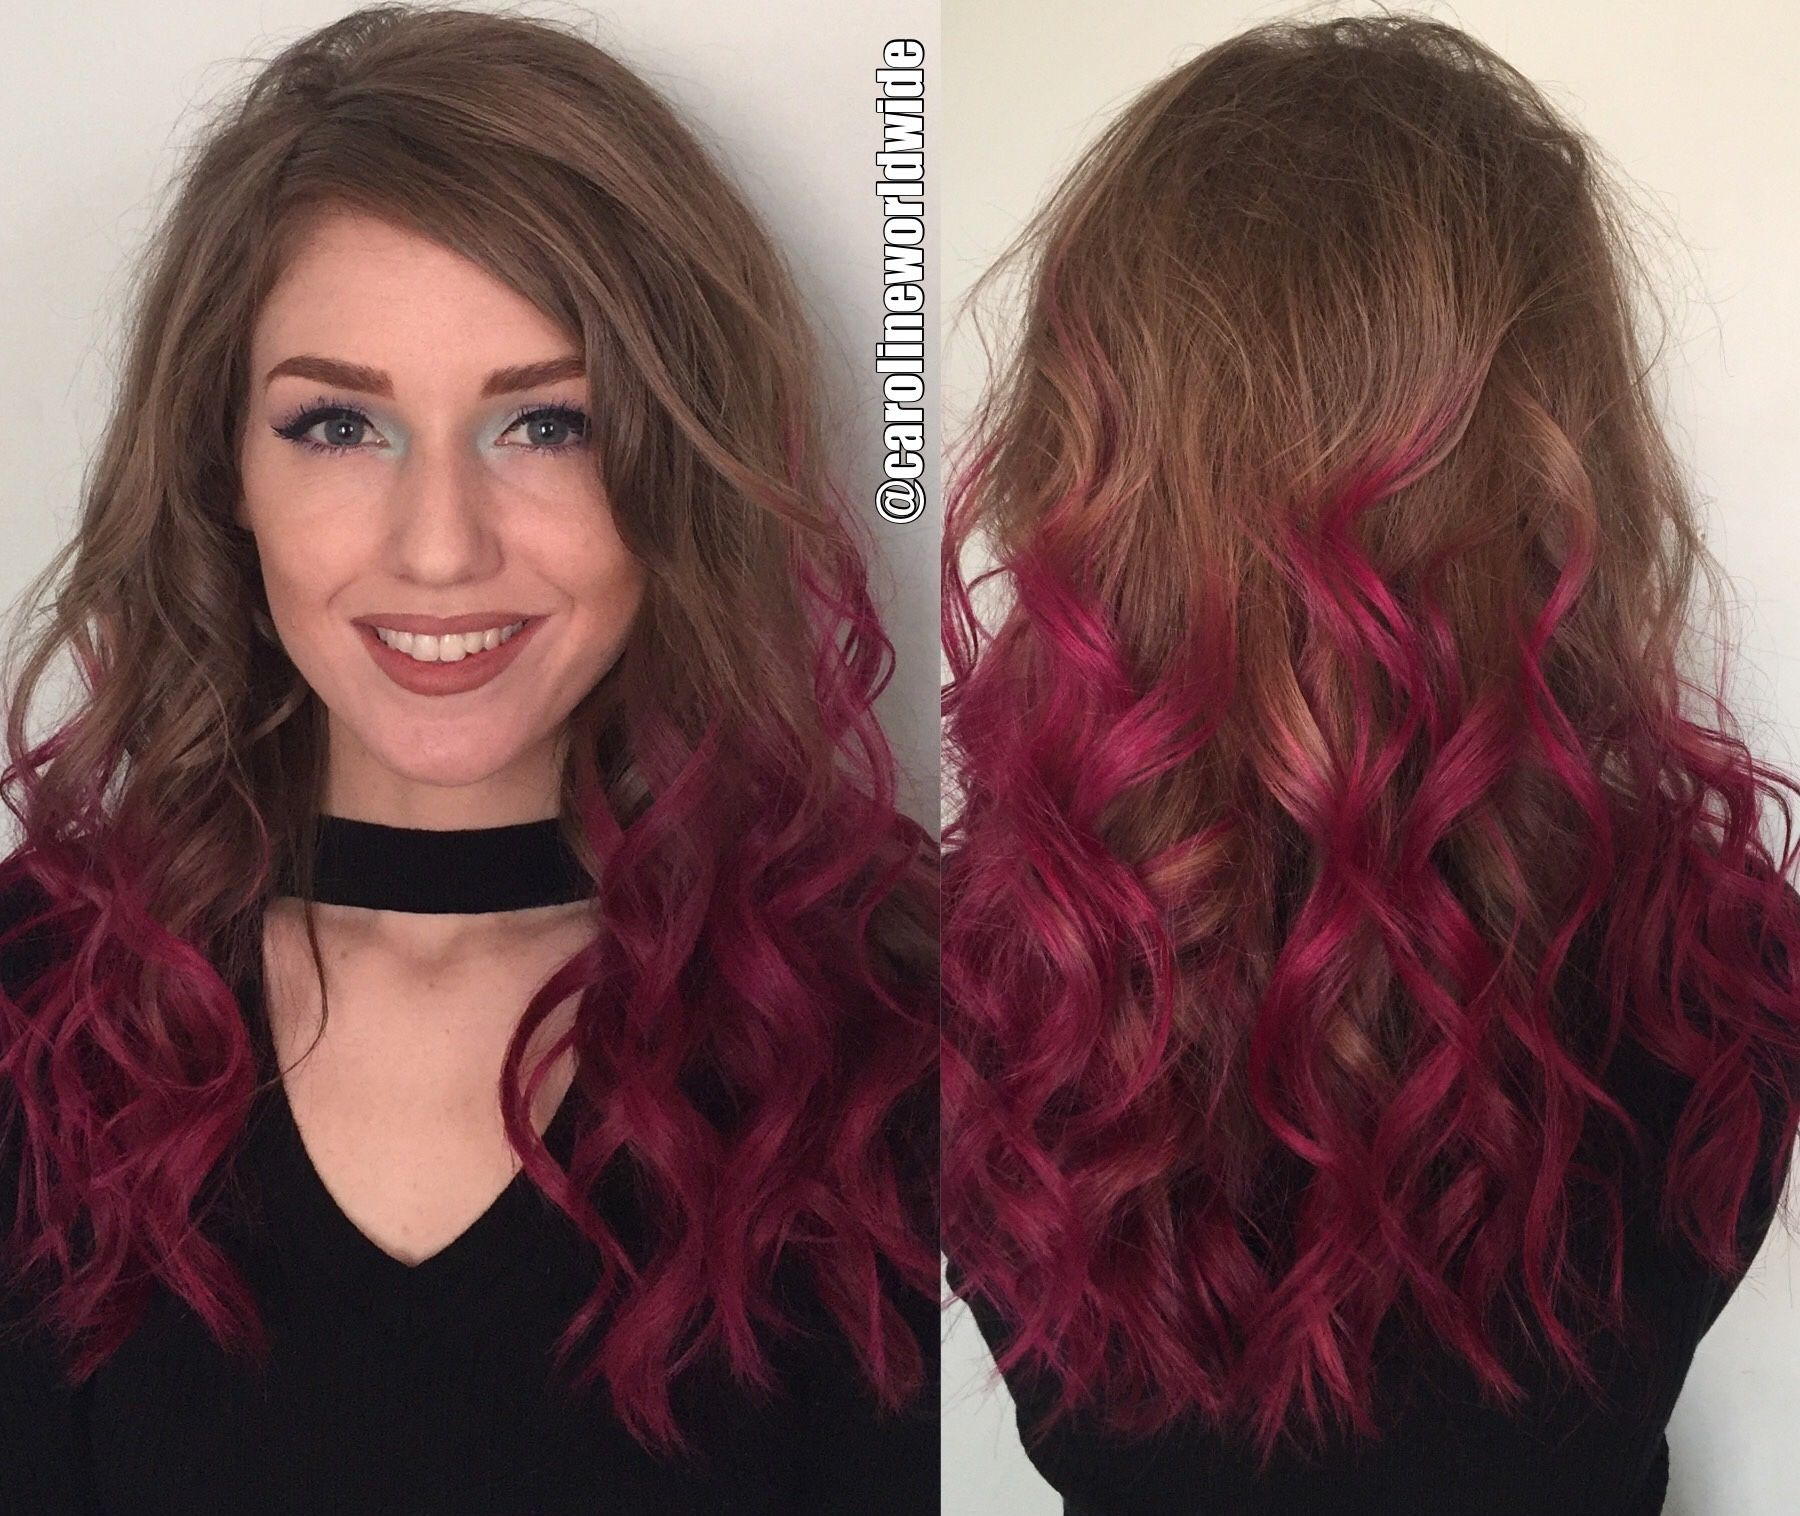 Medium Long Natural Brown Hair With Magenta Ombr Had Been Coloring